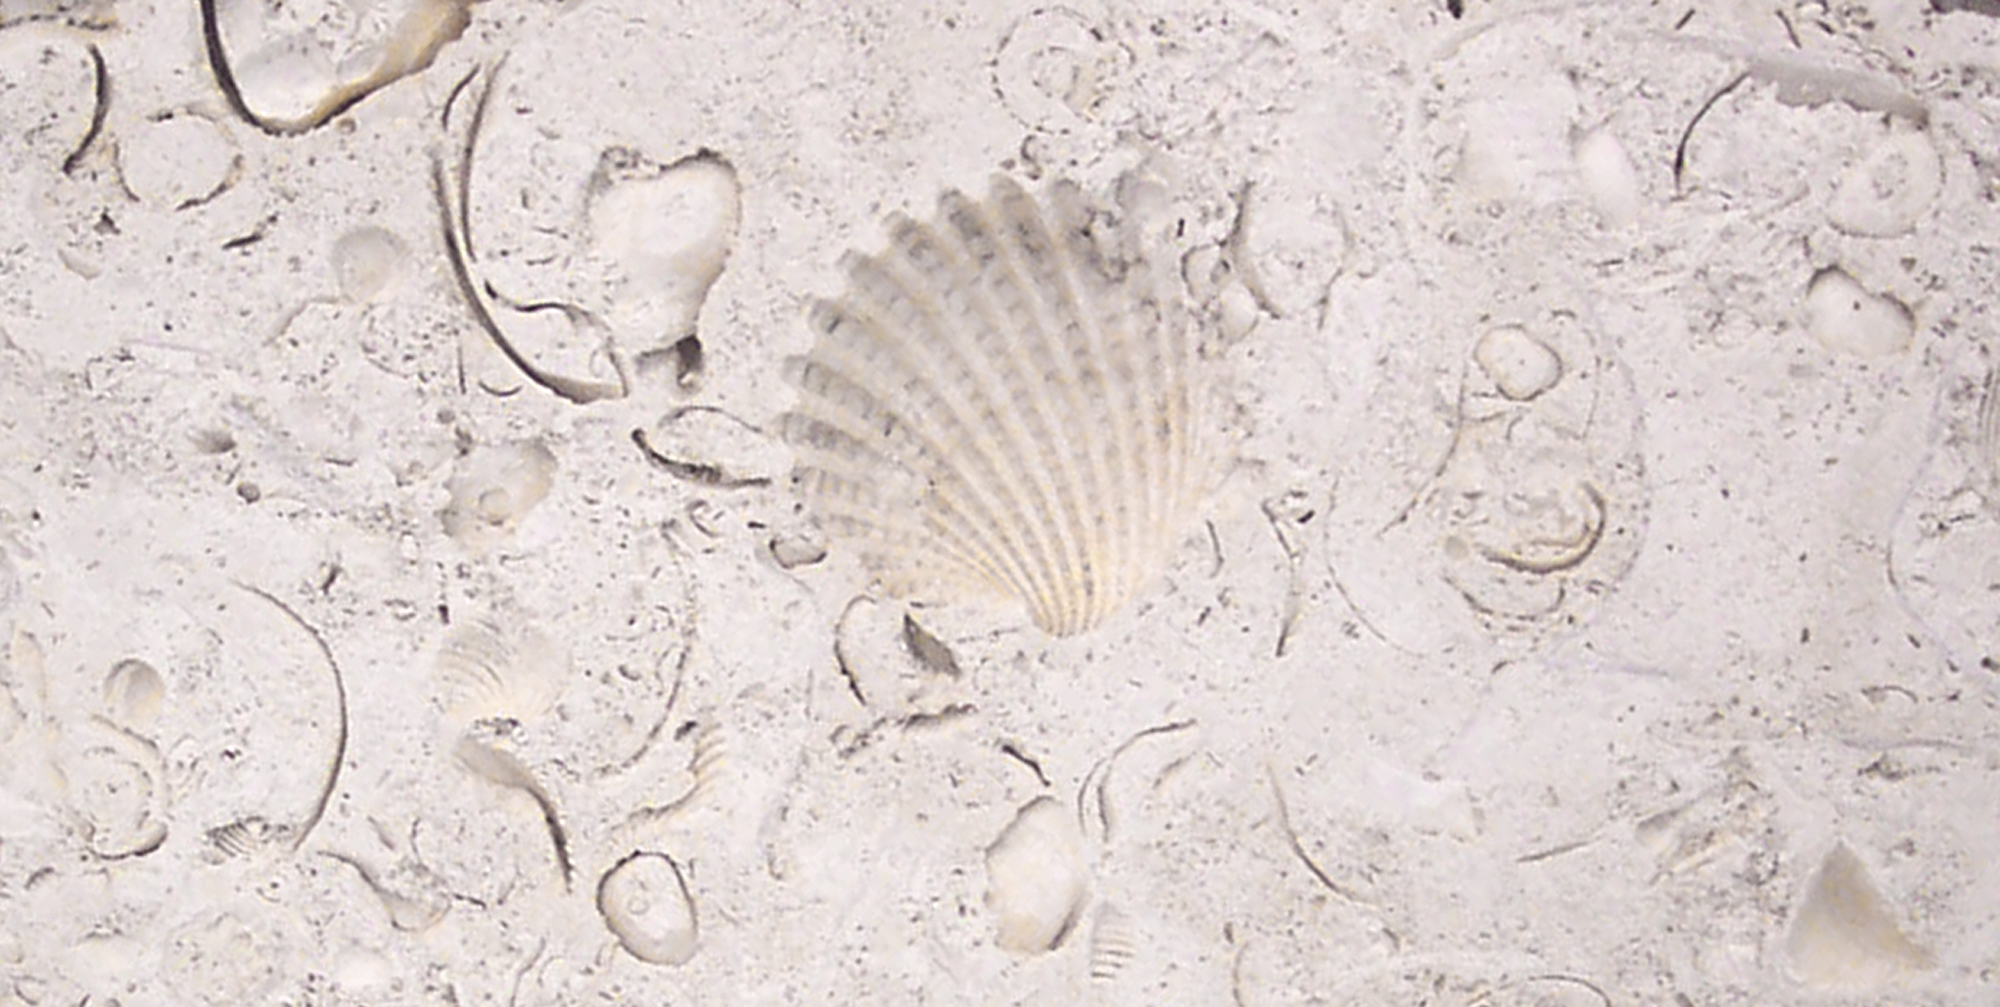 Ostra_with shell closeup_2000x1007_DCP_3568.jpg